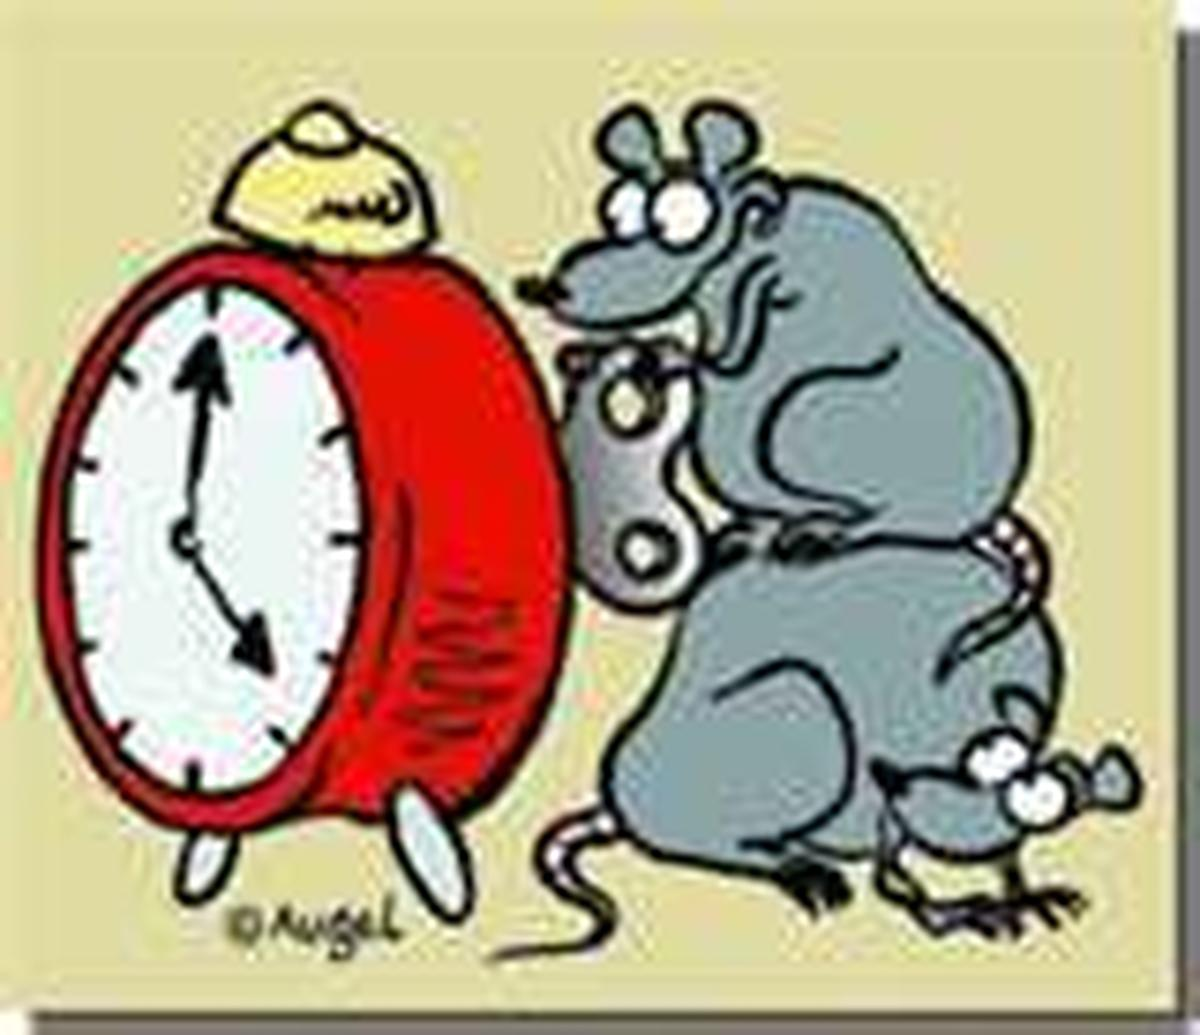 ATTENTION CE W-E .....DECALAGE HORAIRE!!!!